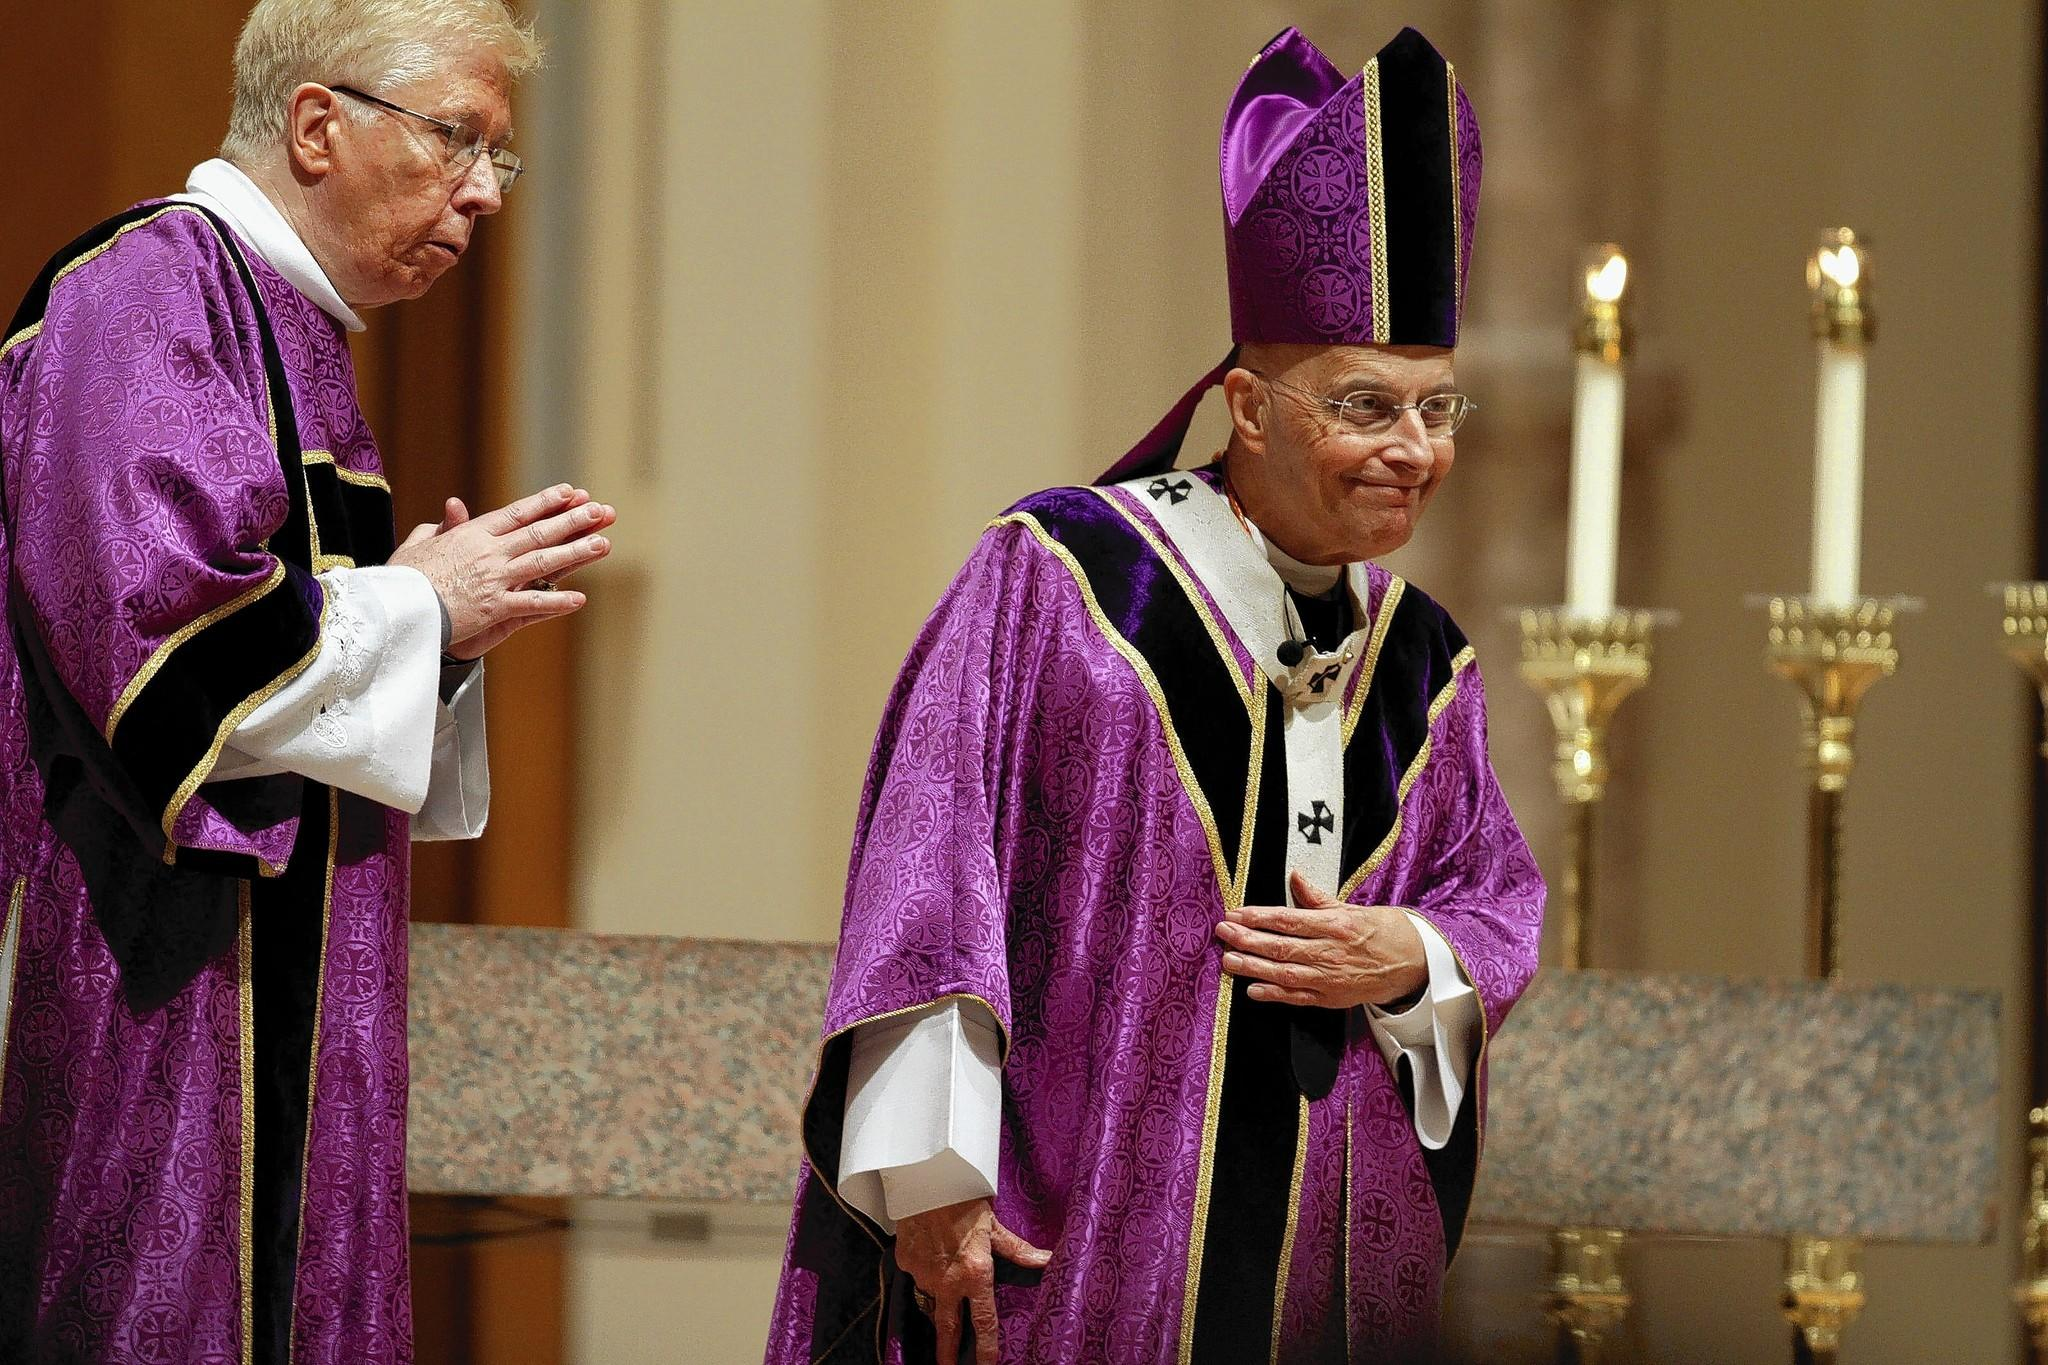 In December Cardinal Francis George celebrated a Mass marking his 50th anniversary in the priesthood.